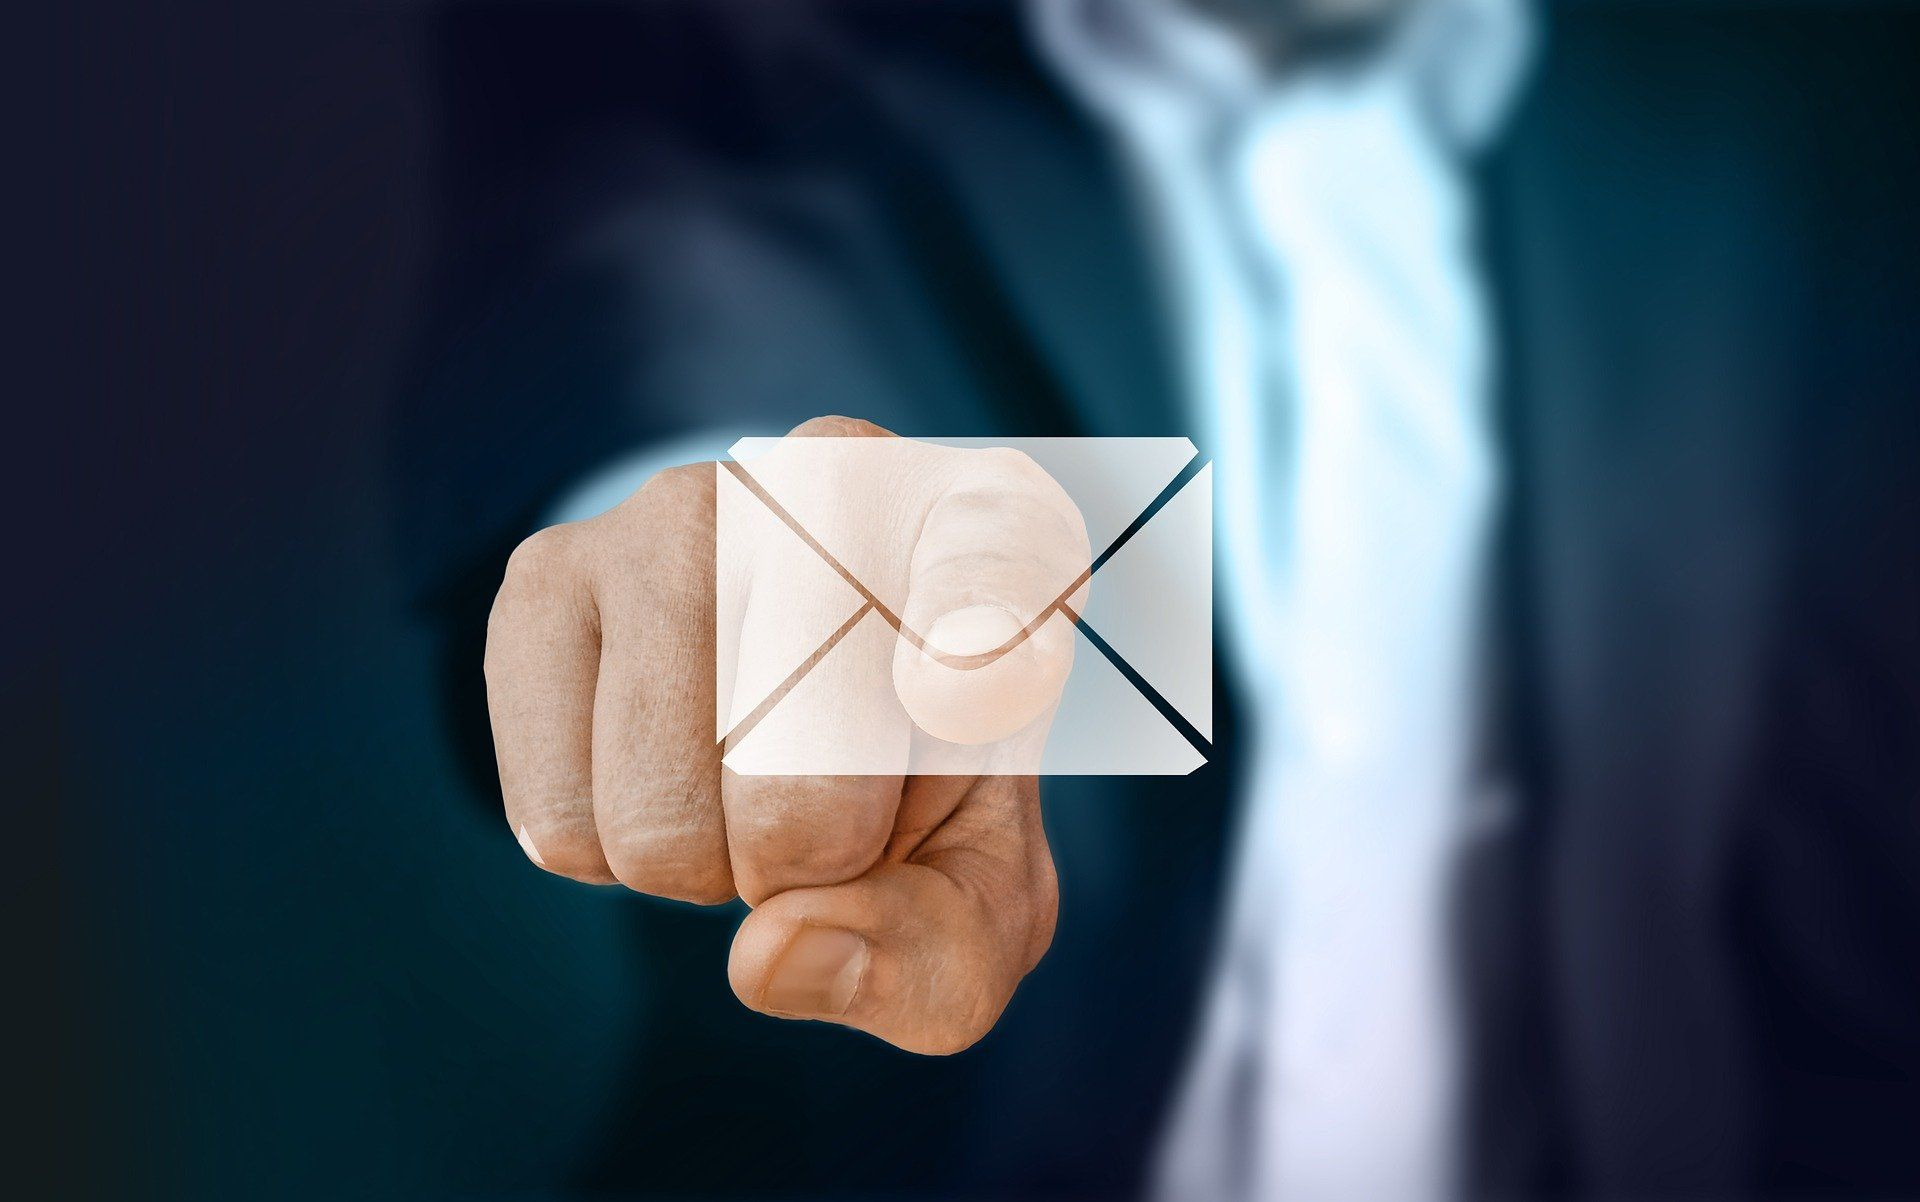 /do-cybercriminals-already-have-access-to-your-email-qff931hm feature image